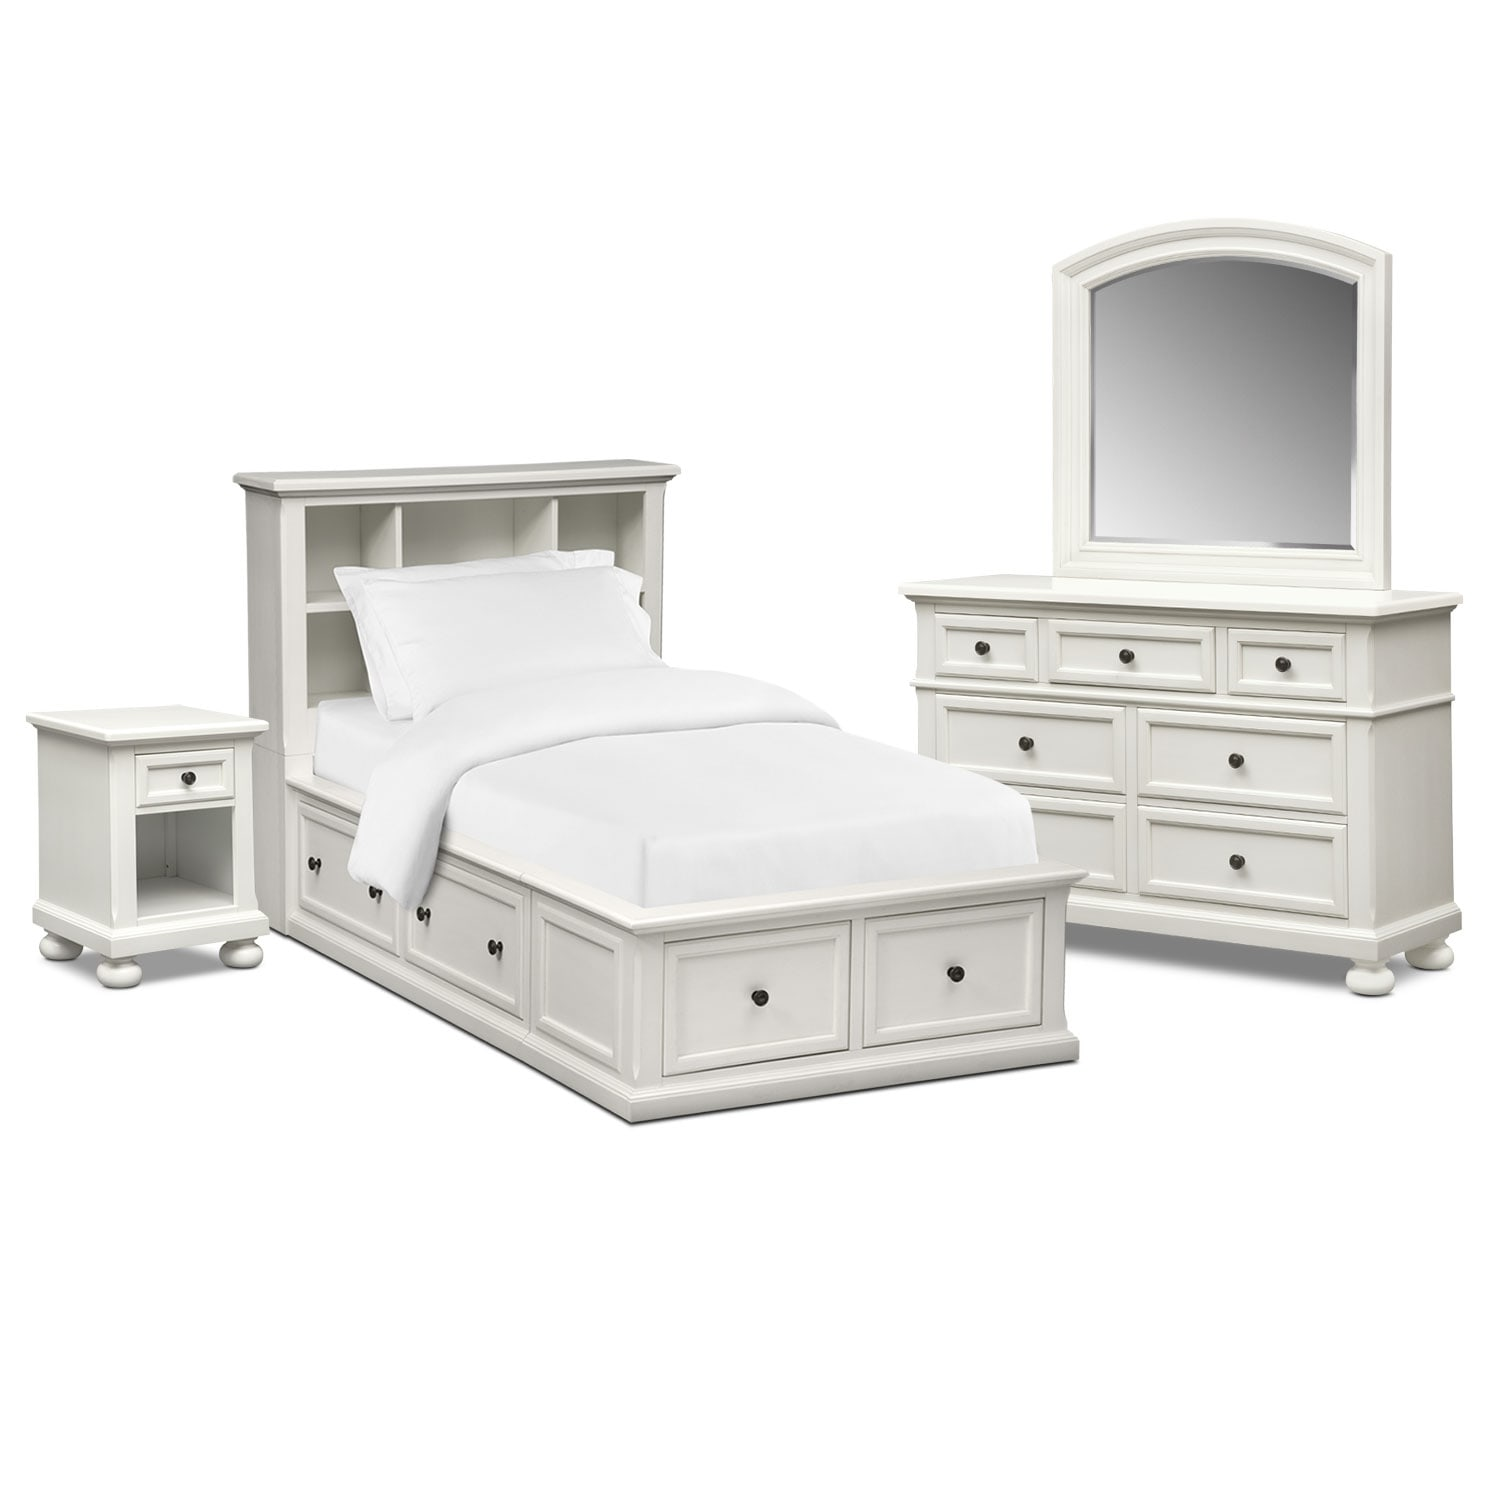 Bedroom Furniture - Hanover Youth 6-Piece Bookcase Storage Bedroom Set with Nightstand, Dresser and Mirror